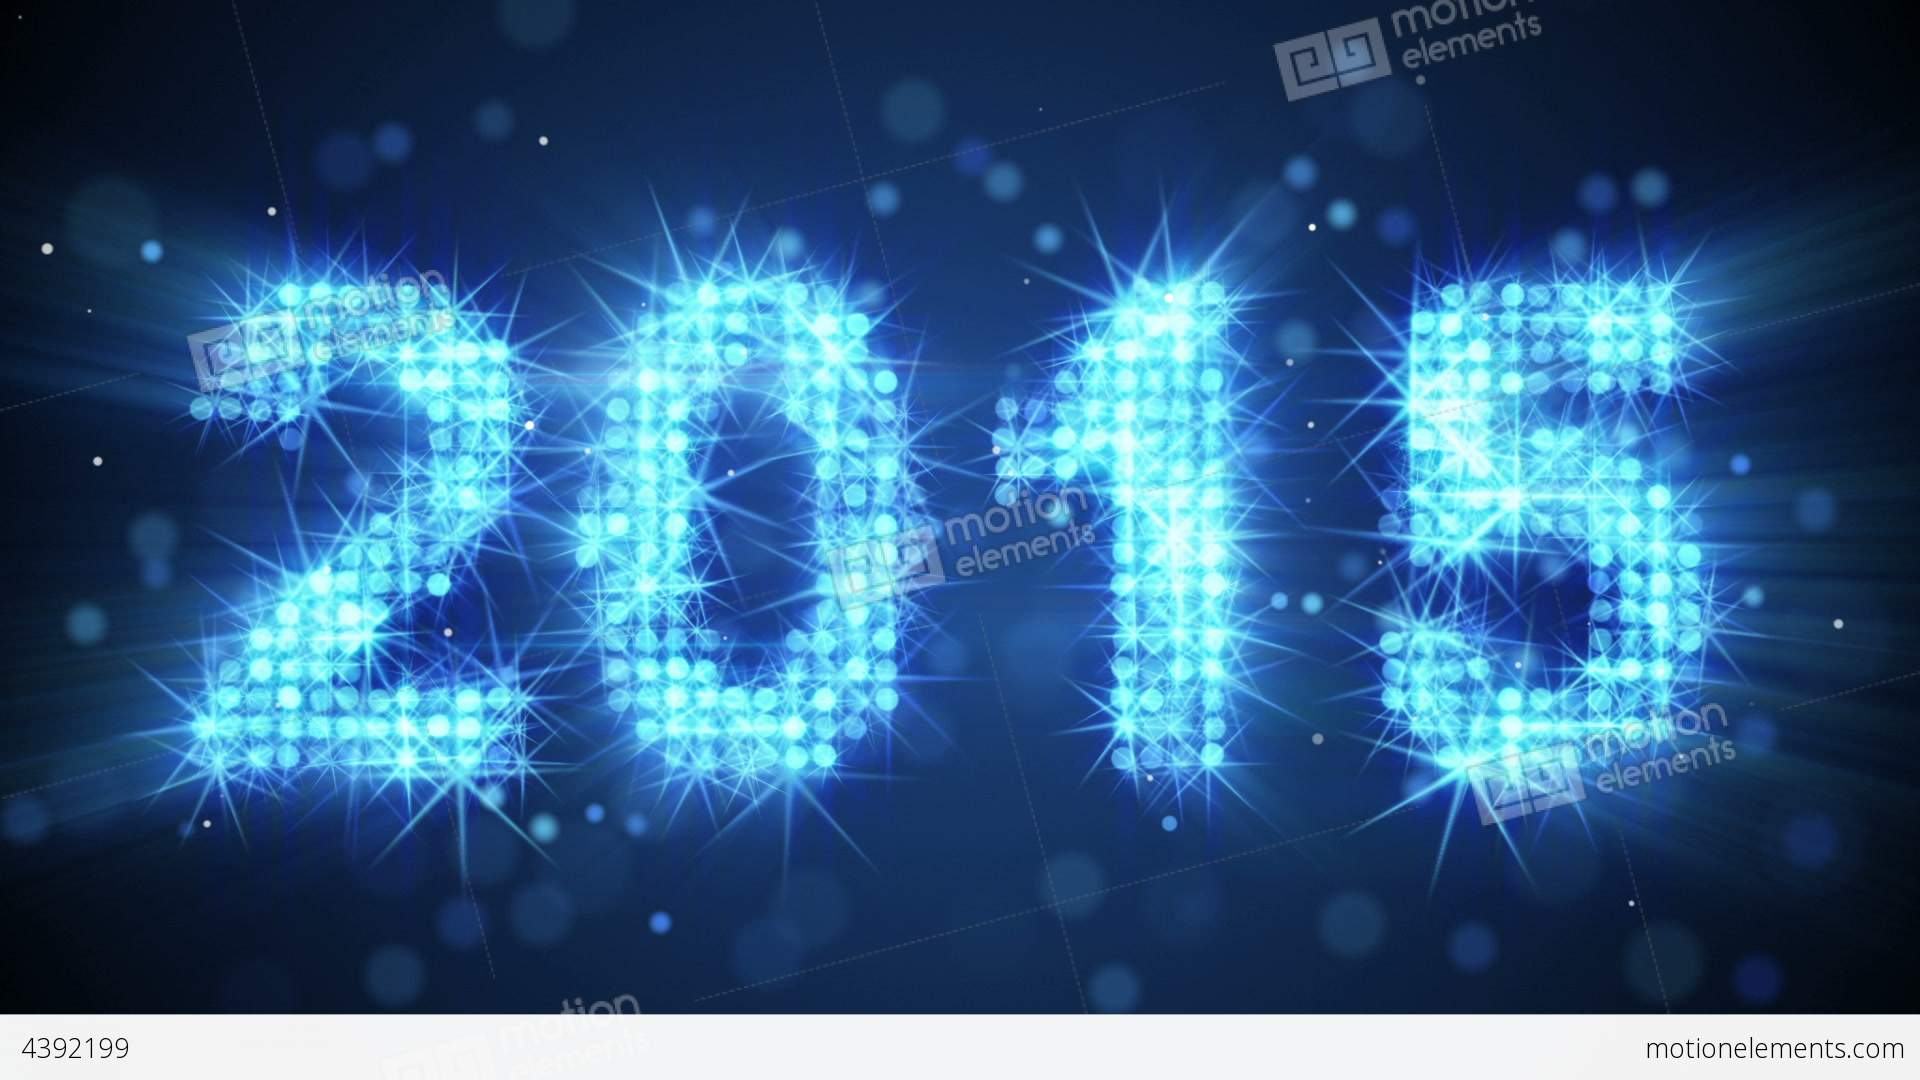 New year 2015 greeting glowing blue particles loop stock animation new year 2015 greeting glowing blue particles loop stock video footage kristyandbryce Gallery